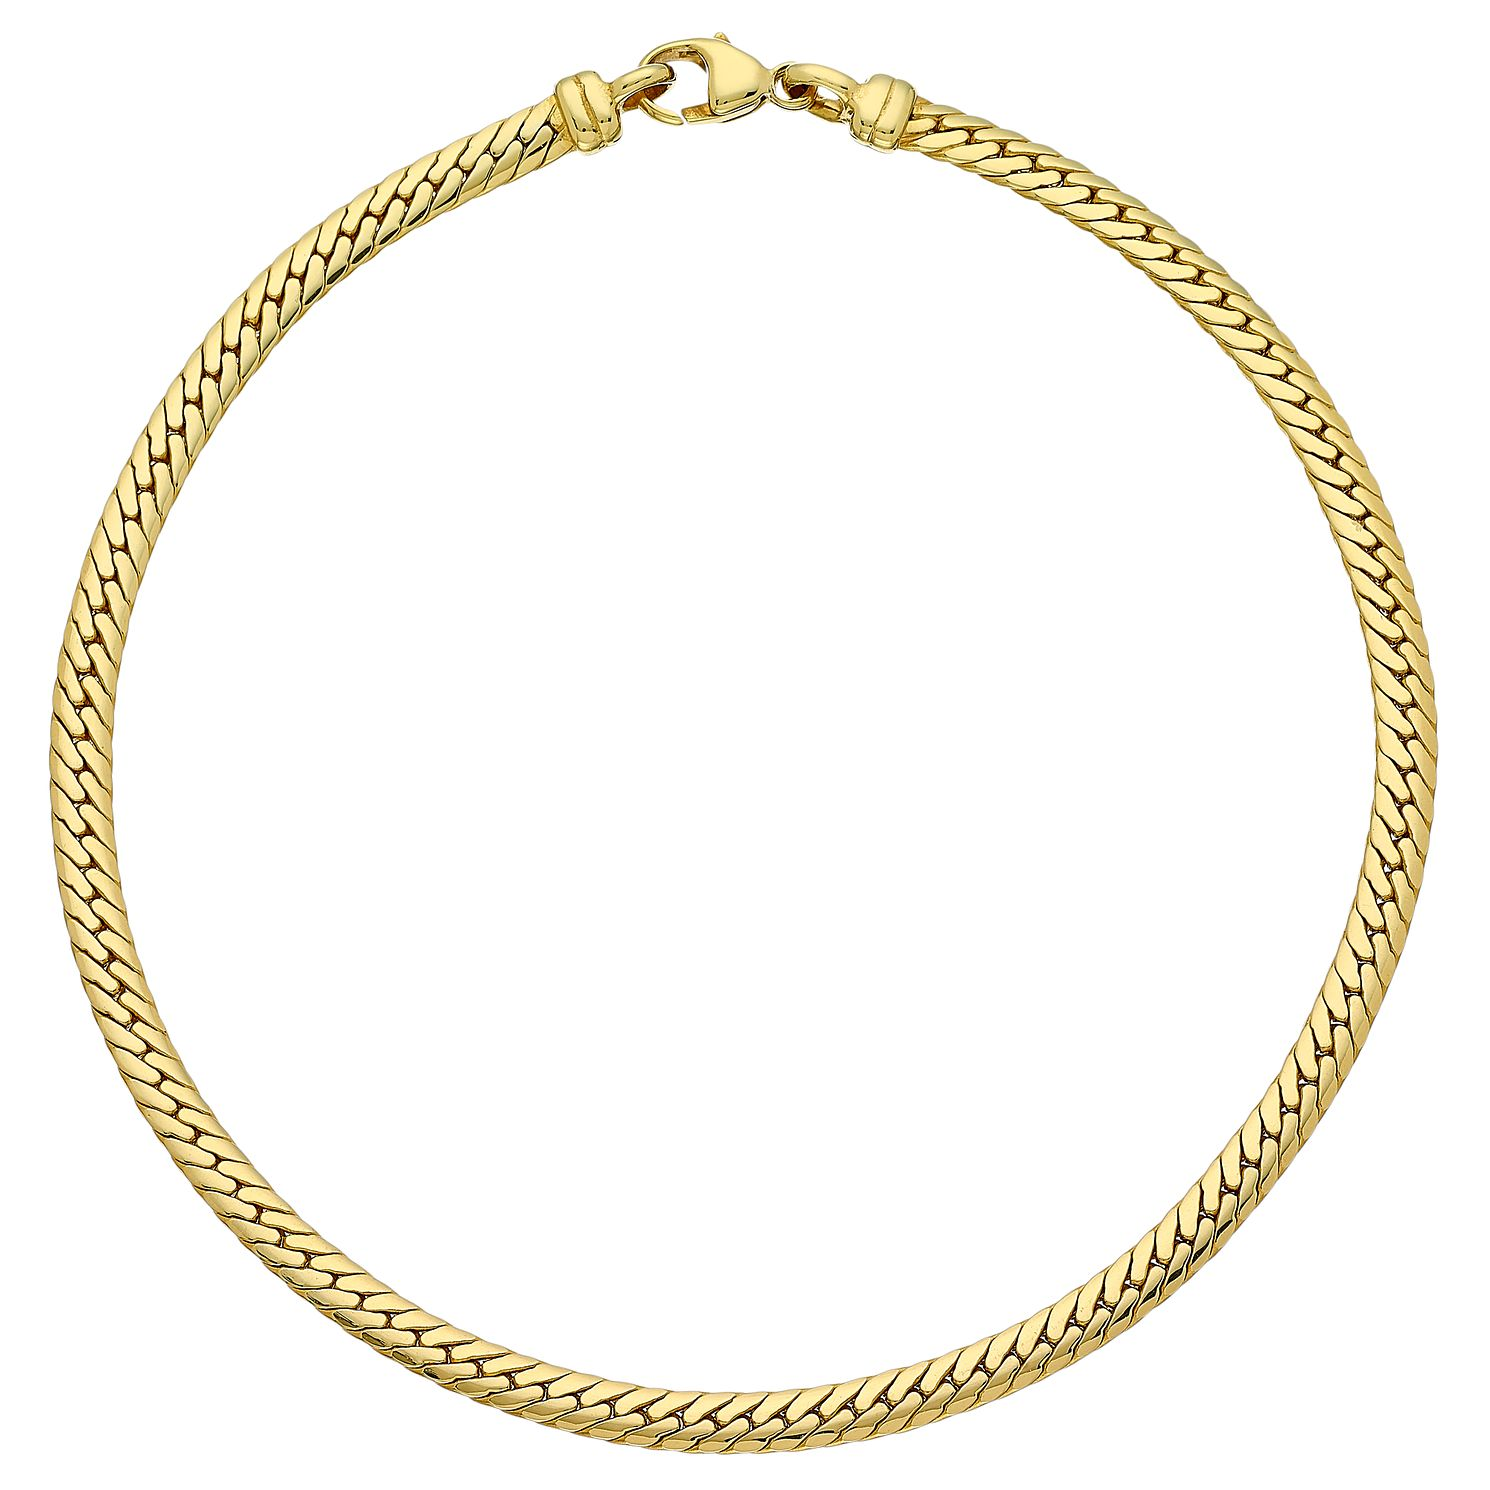 9ct Gold 7.5 inches Snake Chain Bracelet - Product number 3801217